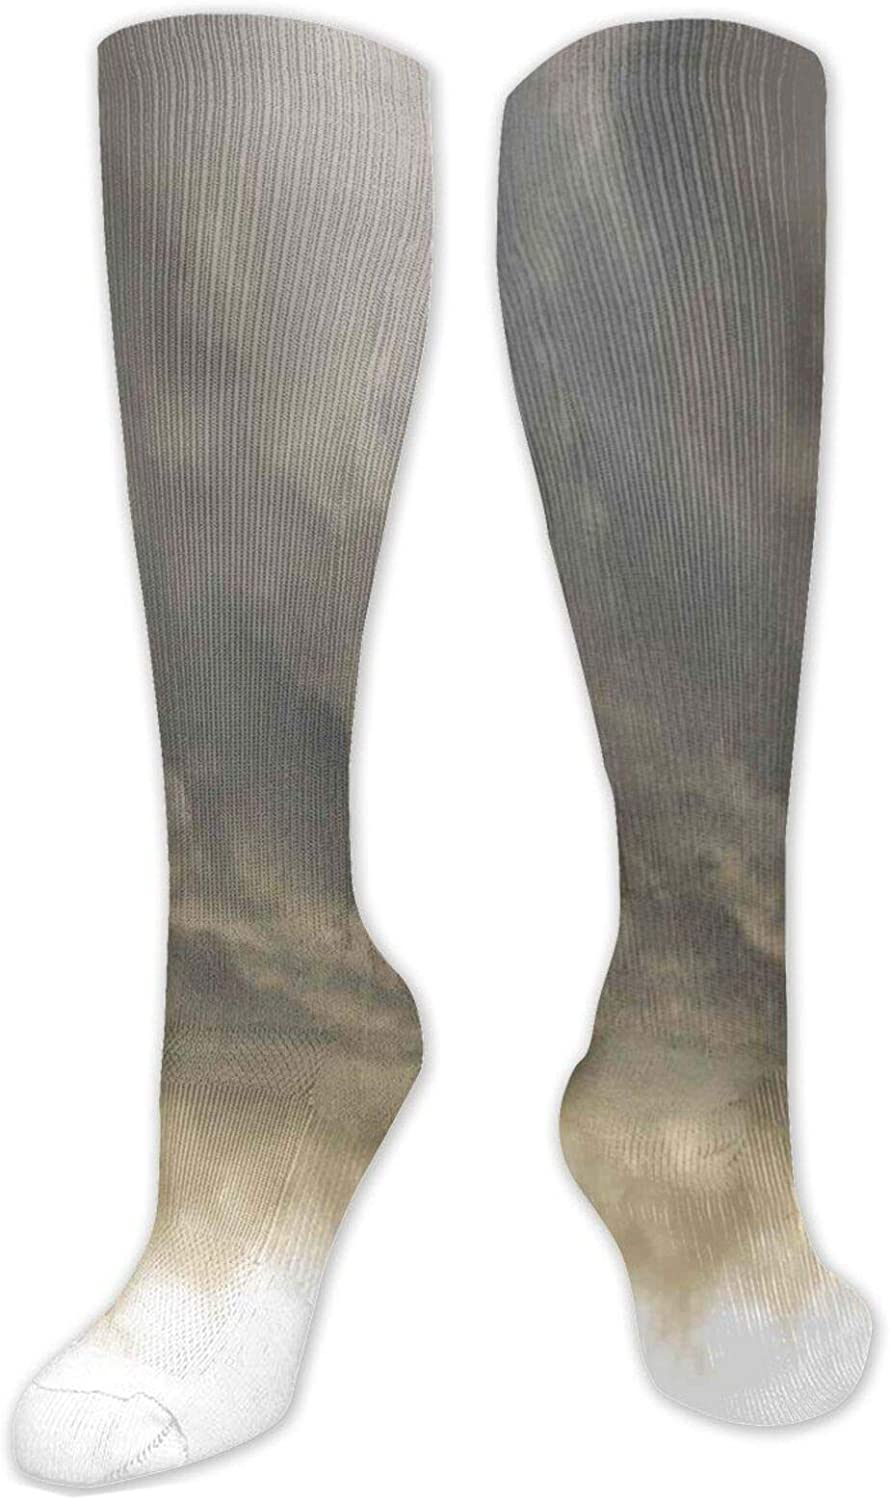 Compression High Socks-Abstract Blue Sea With Tiny Waves Smiling Swimming Diving Fish With Fins Aquatic Best for Running,Athletic,Hiking,Travel,Flight